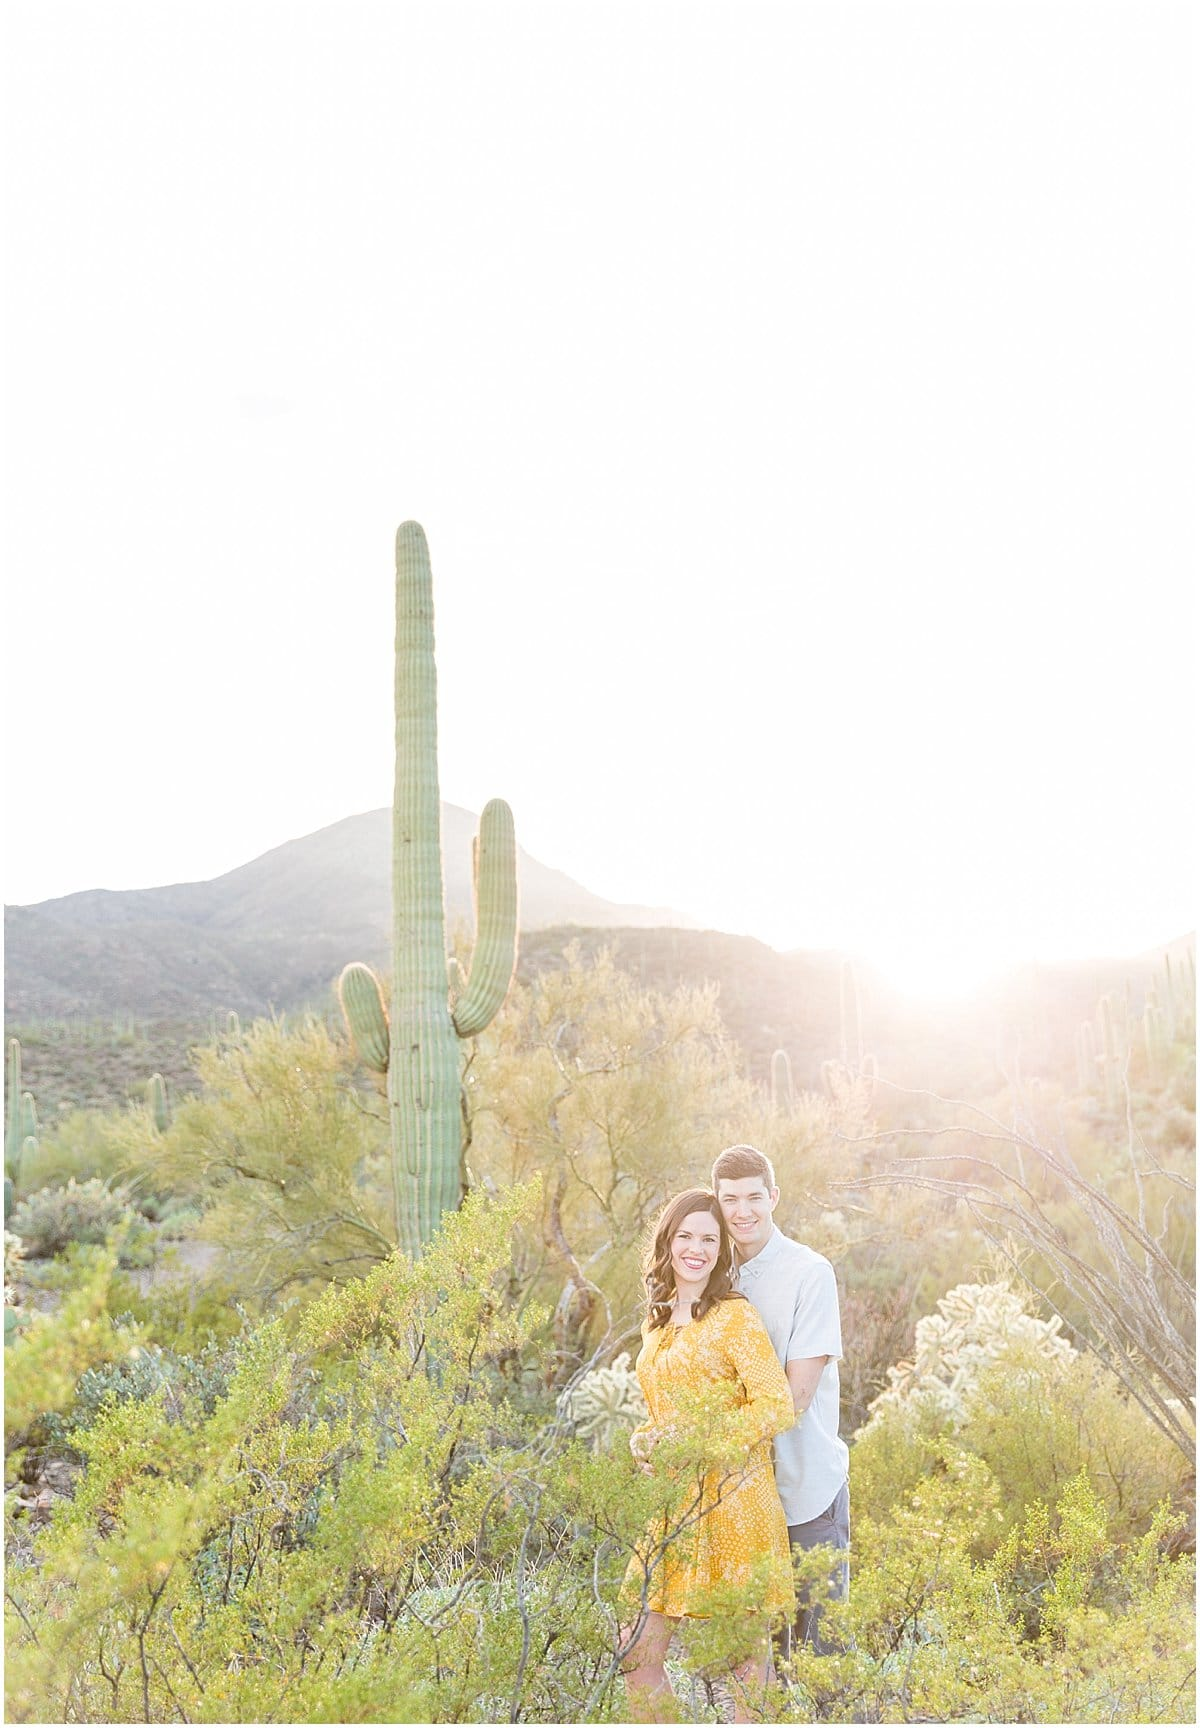 married-arizona-desert-cassidymrphotography_0025